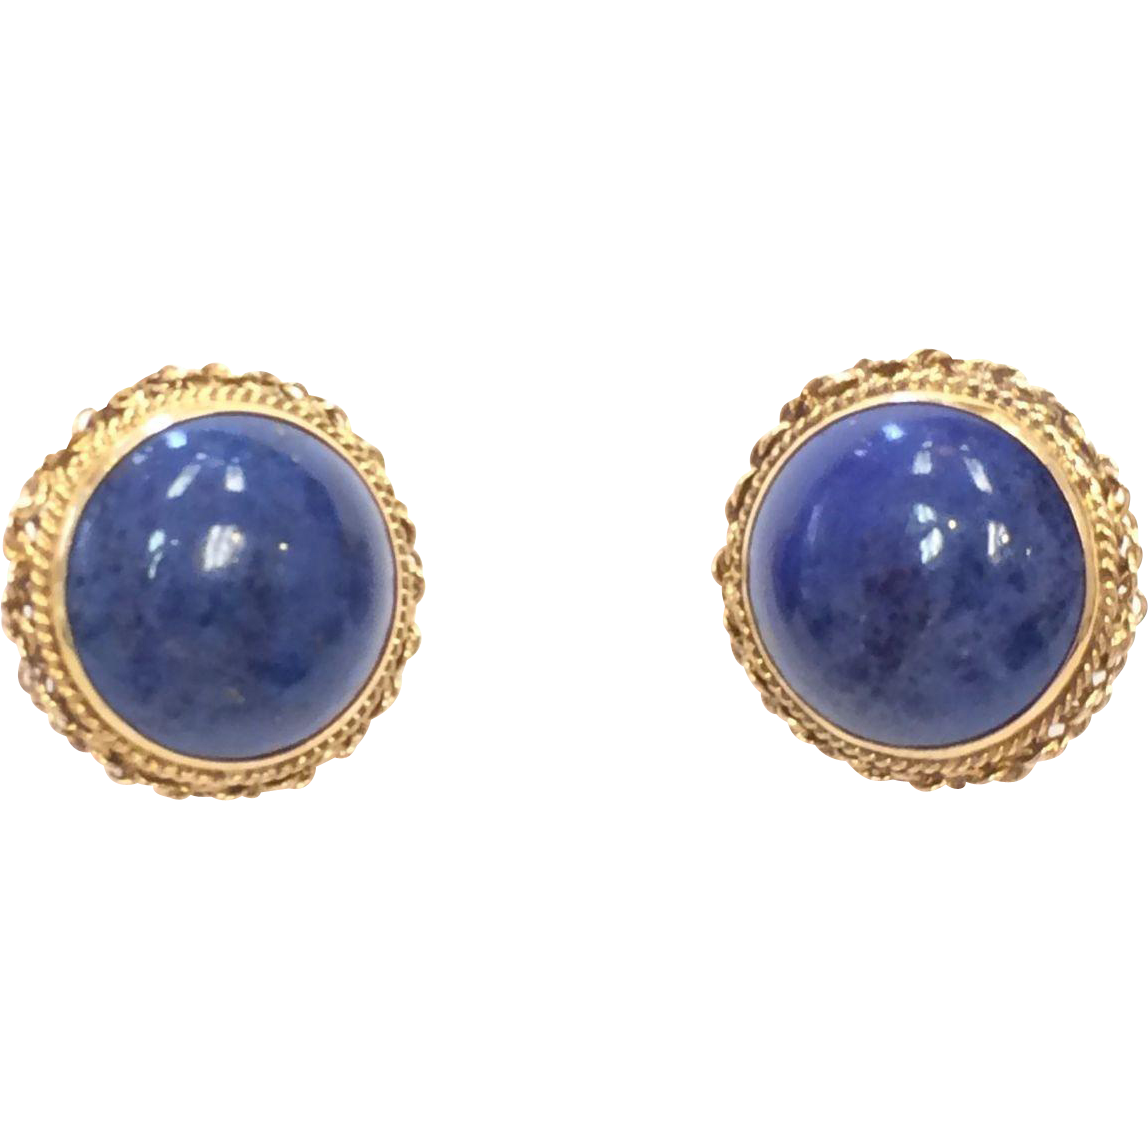 Vintage 1960s Solid 14k Yellow Gold Lapis Lazuli Cabochon Clip on Button Earrings